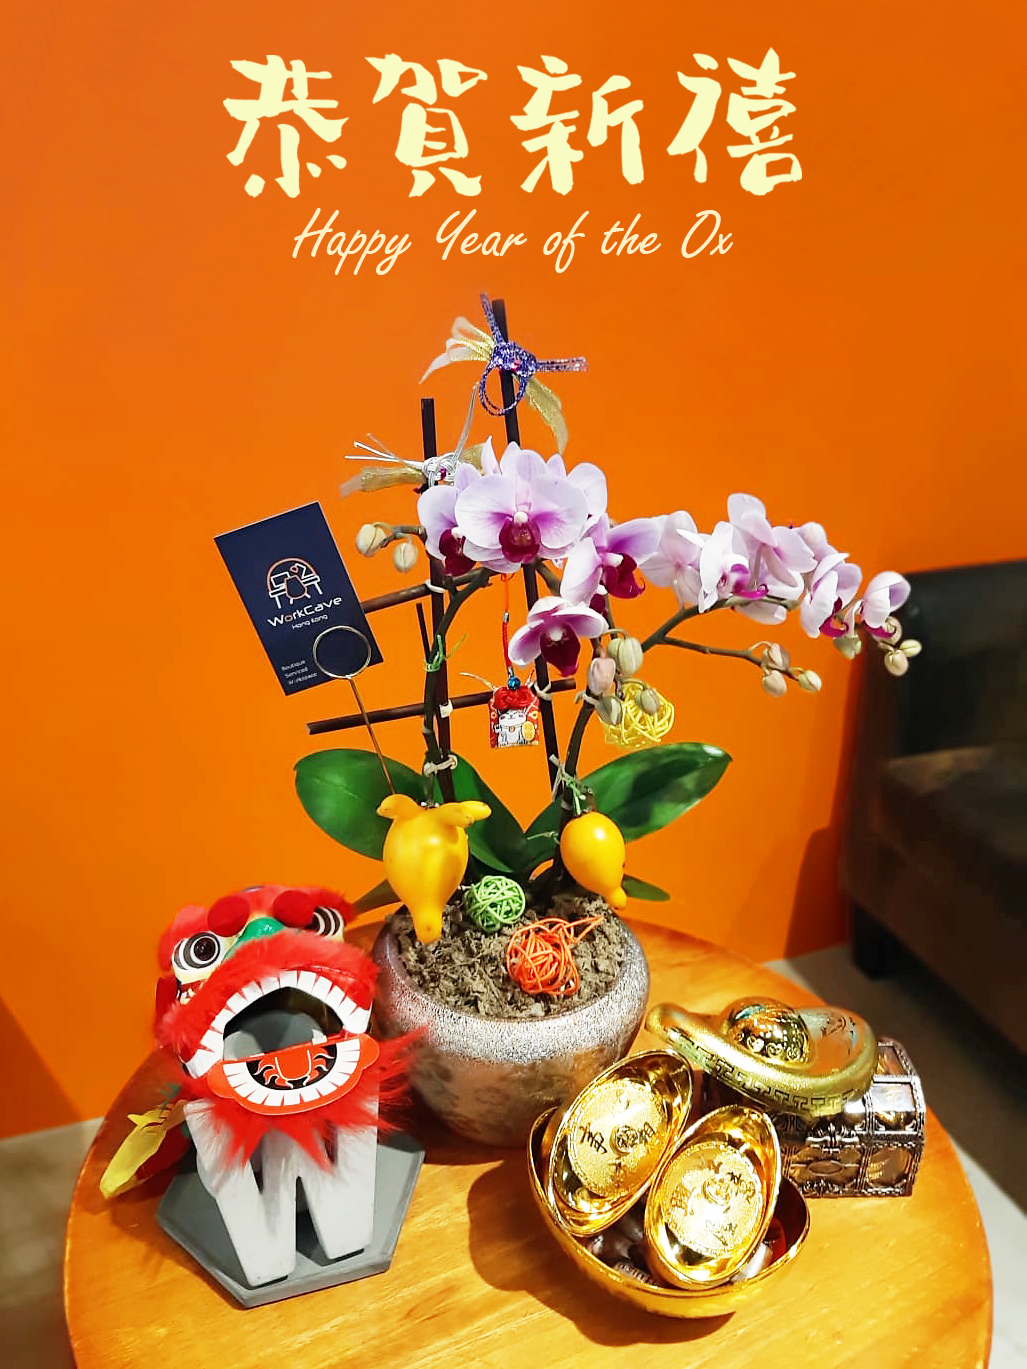 2021 Chinese New Year Greetings from WorkCave